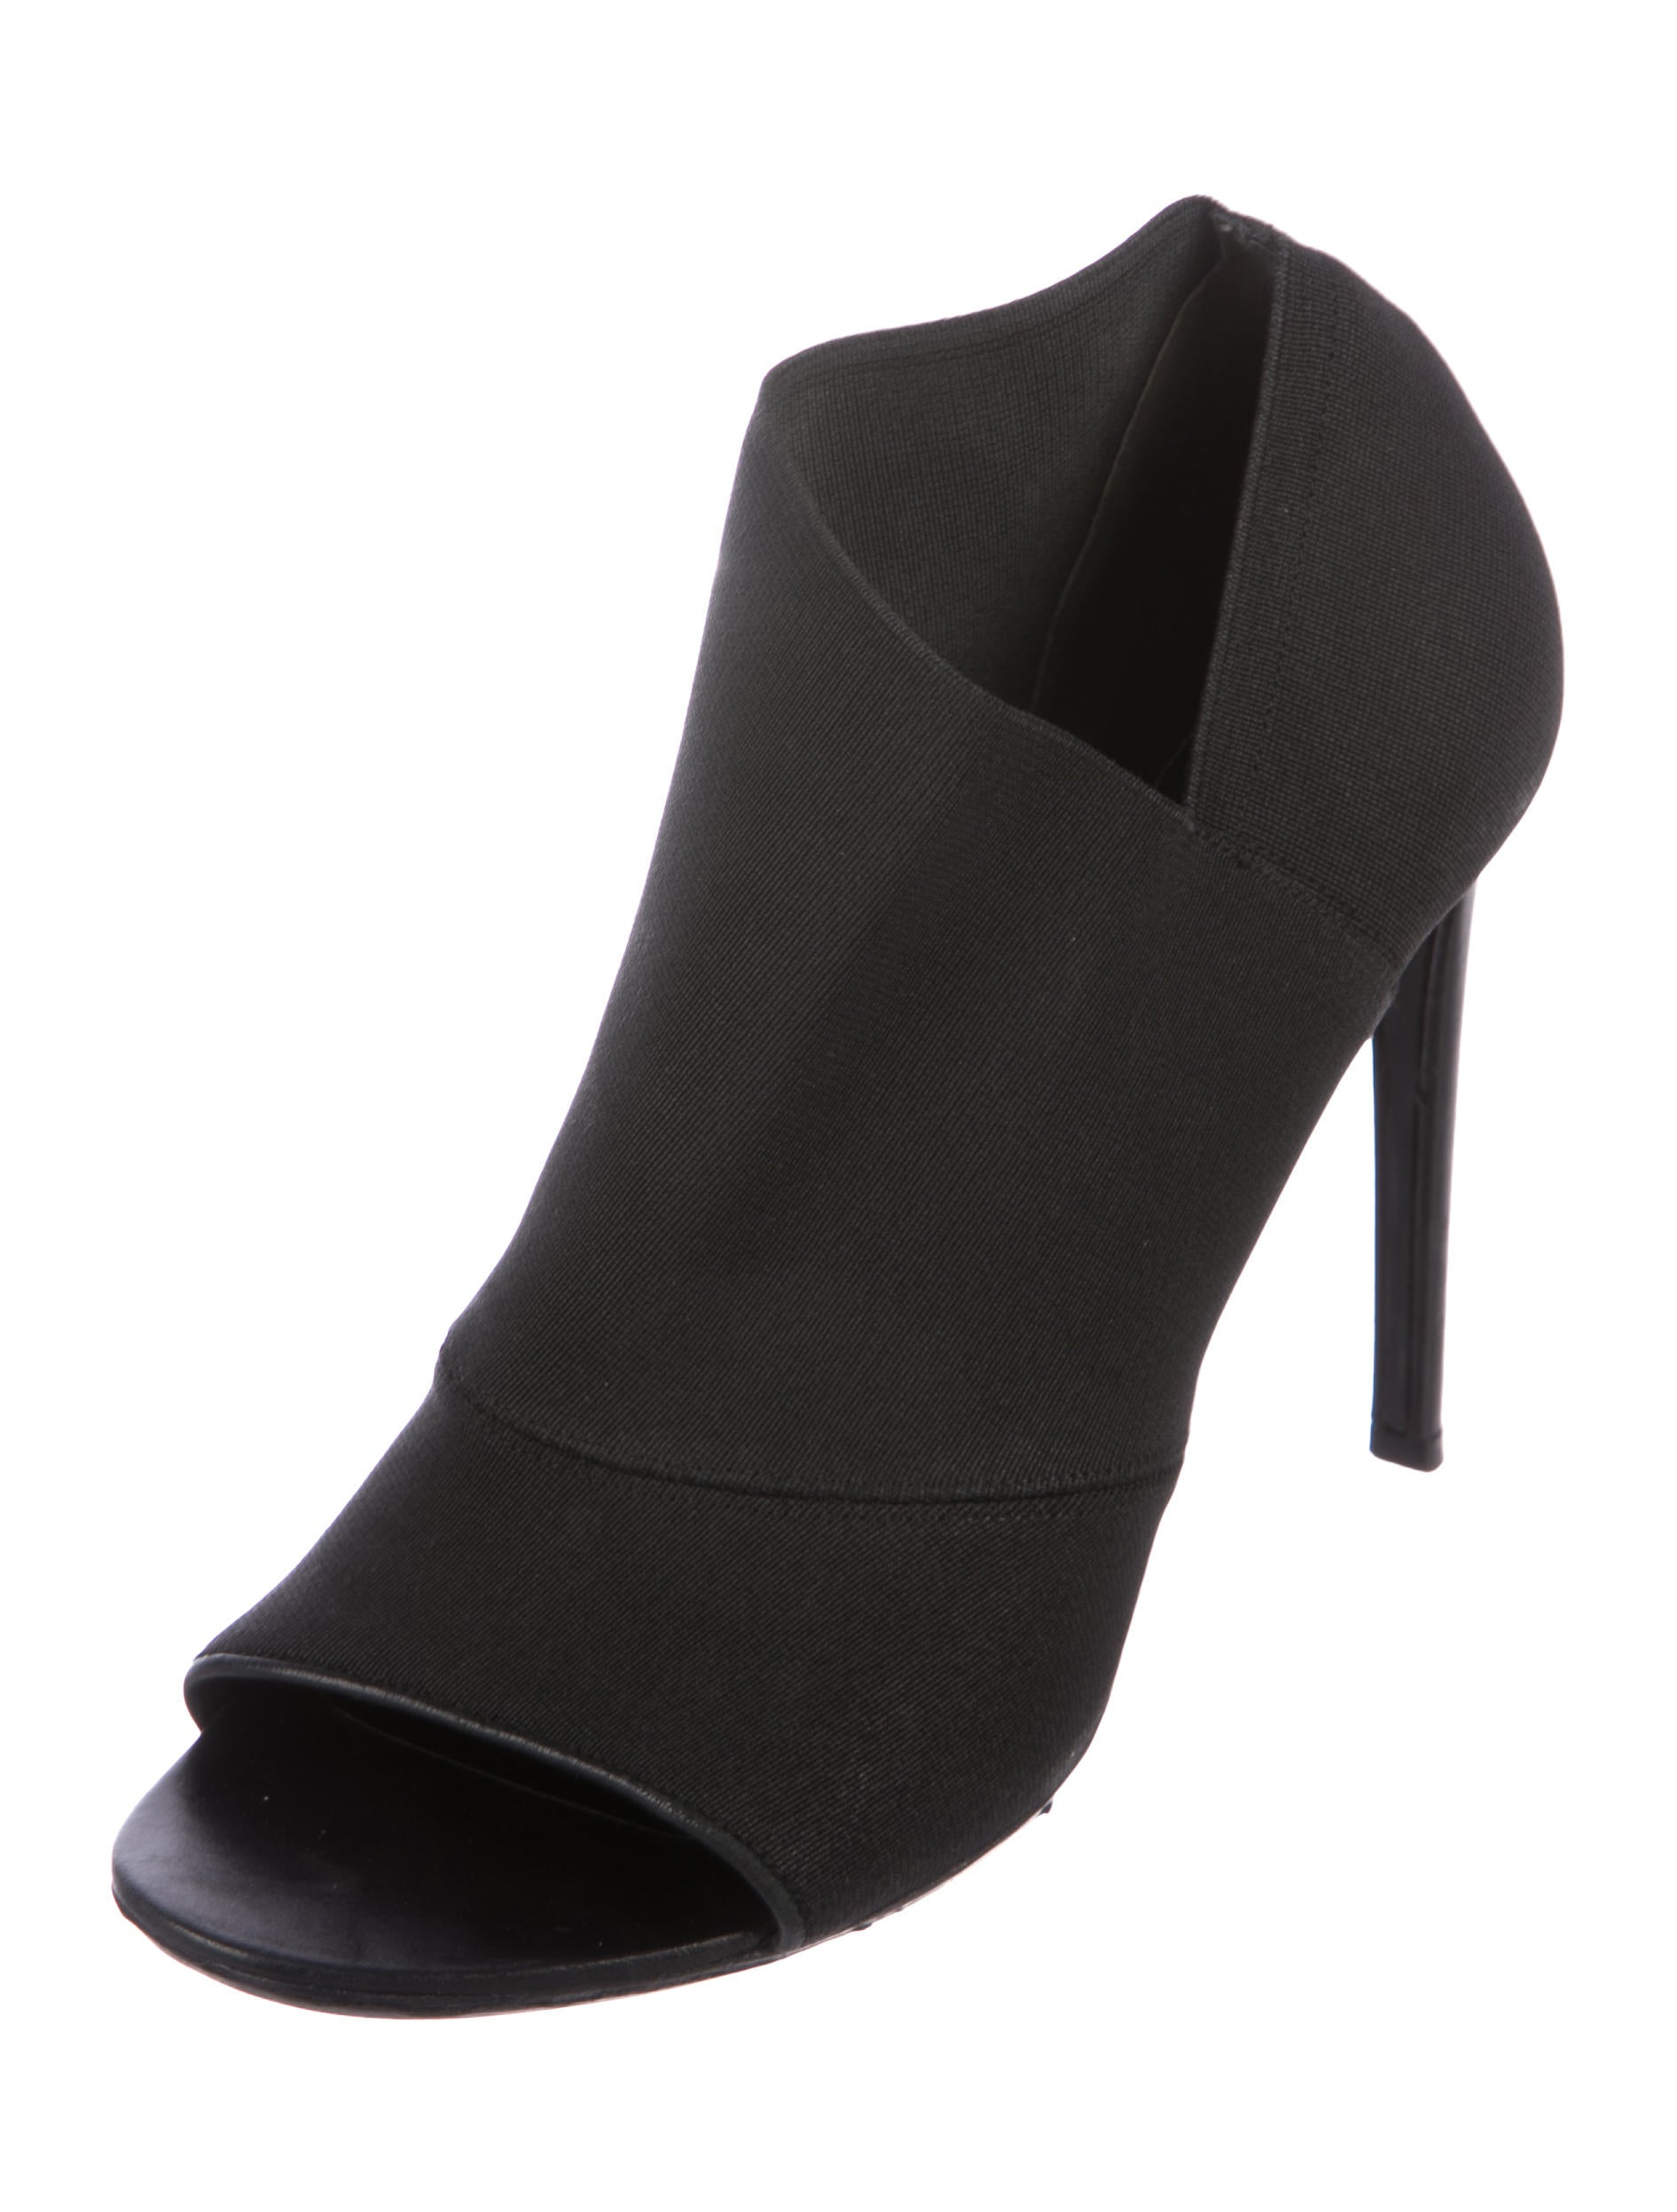 fast delivery for sale buy cheap professional Balenciaga Elasticized Peep-Toe Ankle Boots where can i order discount for nice FSZIv1Ag